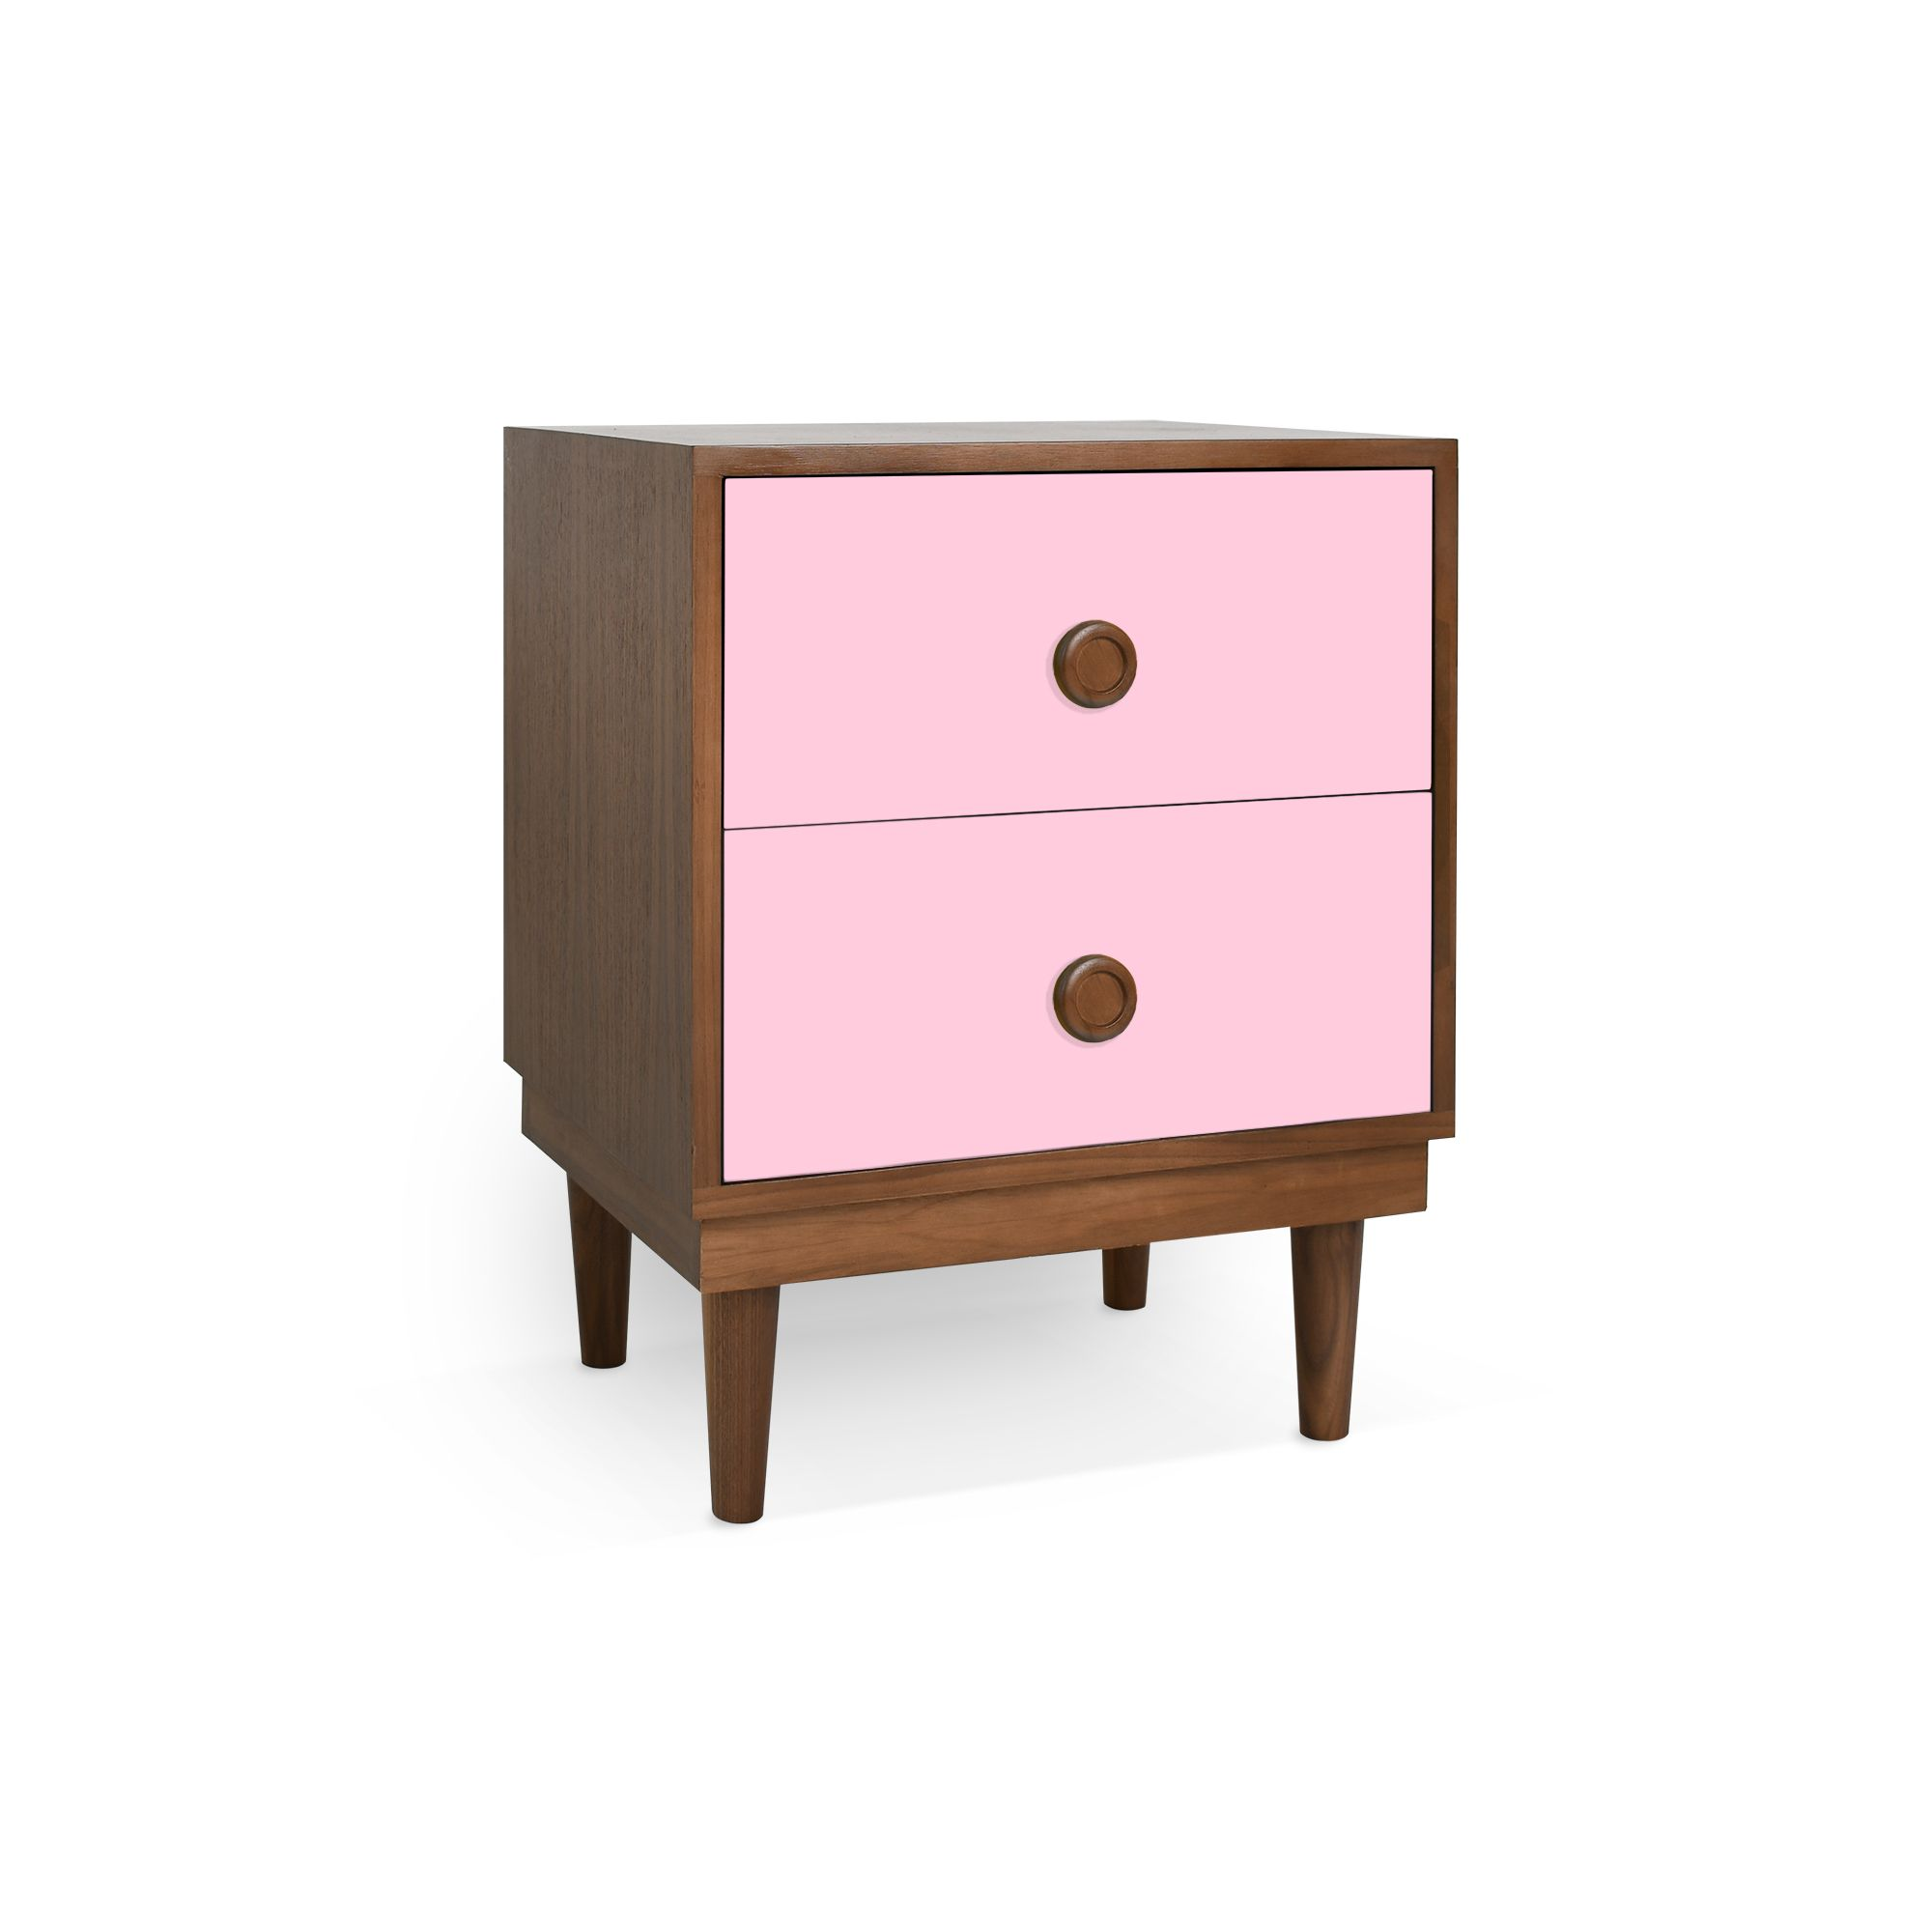 Lukka Modern Kids 2-Drawer Nightstand, Walnut/Pink - Spruce Up: Search - night stands, pink, eclectic modern